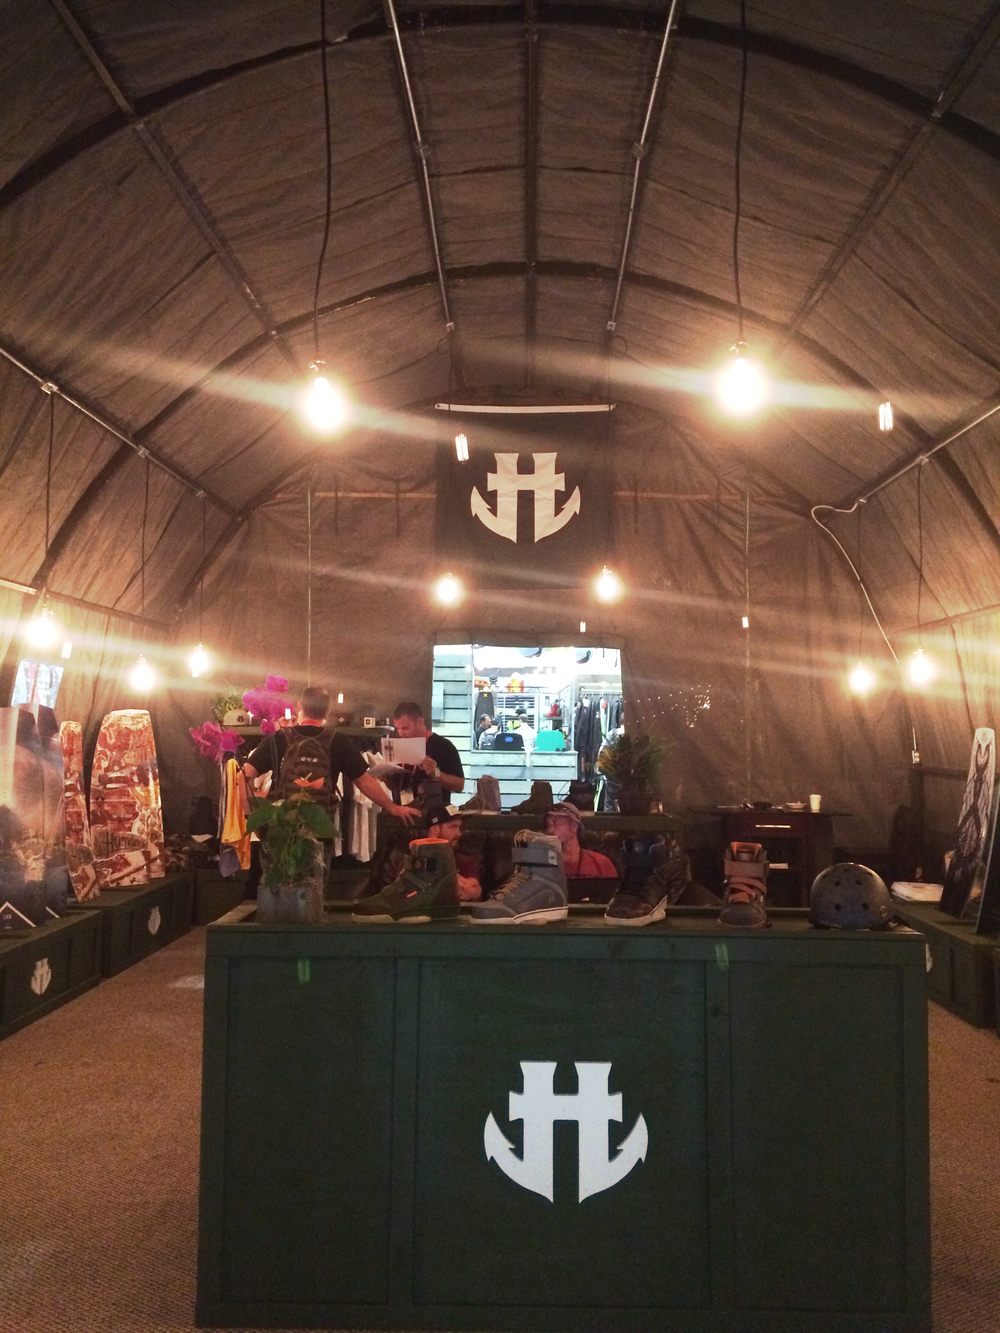 Cool military-inspired booth